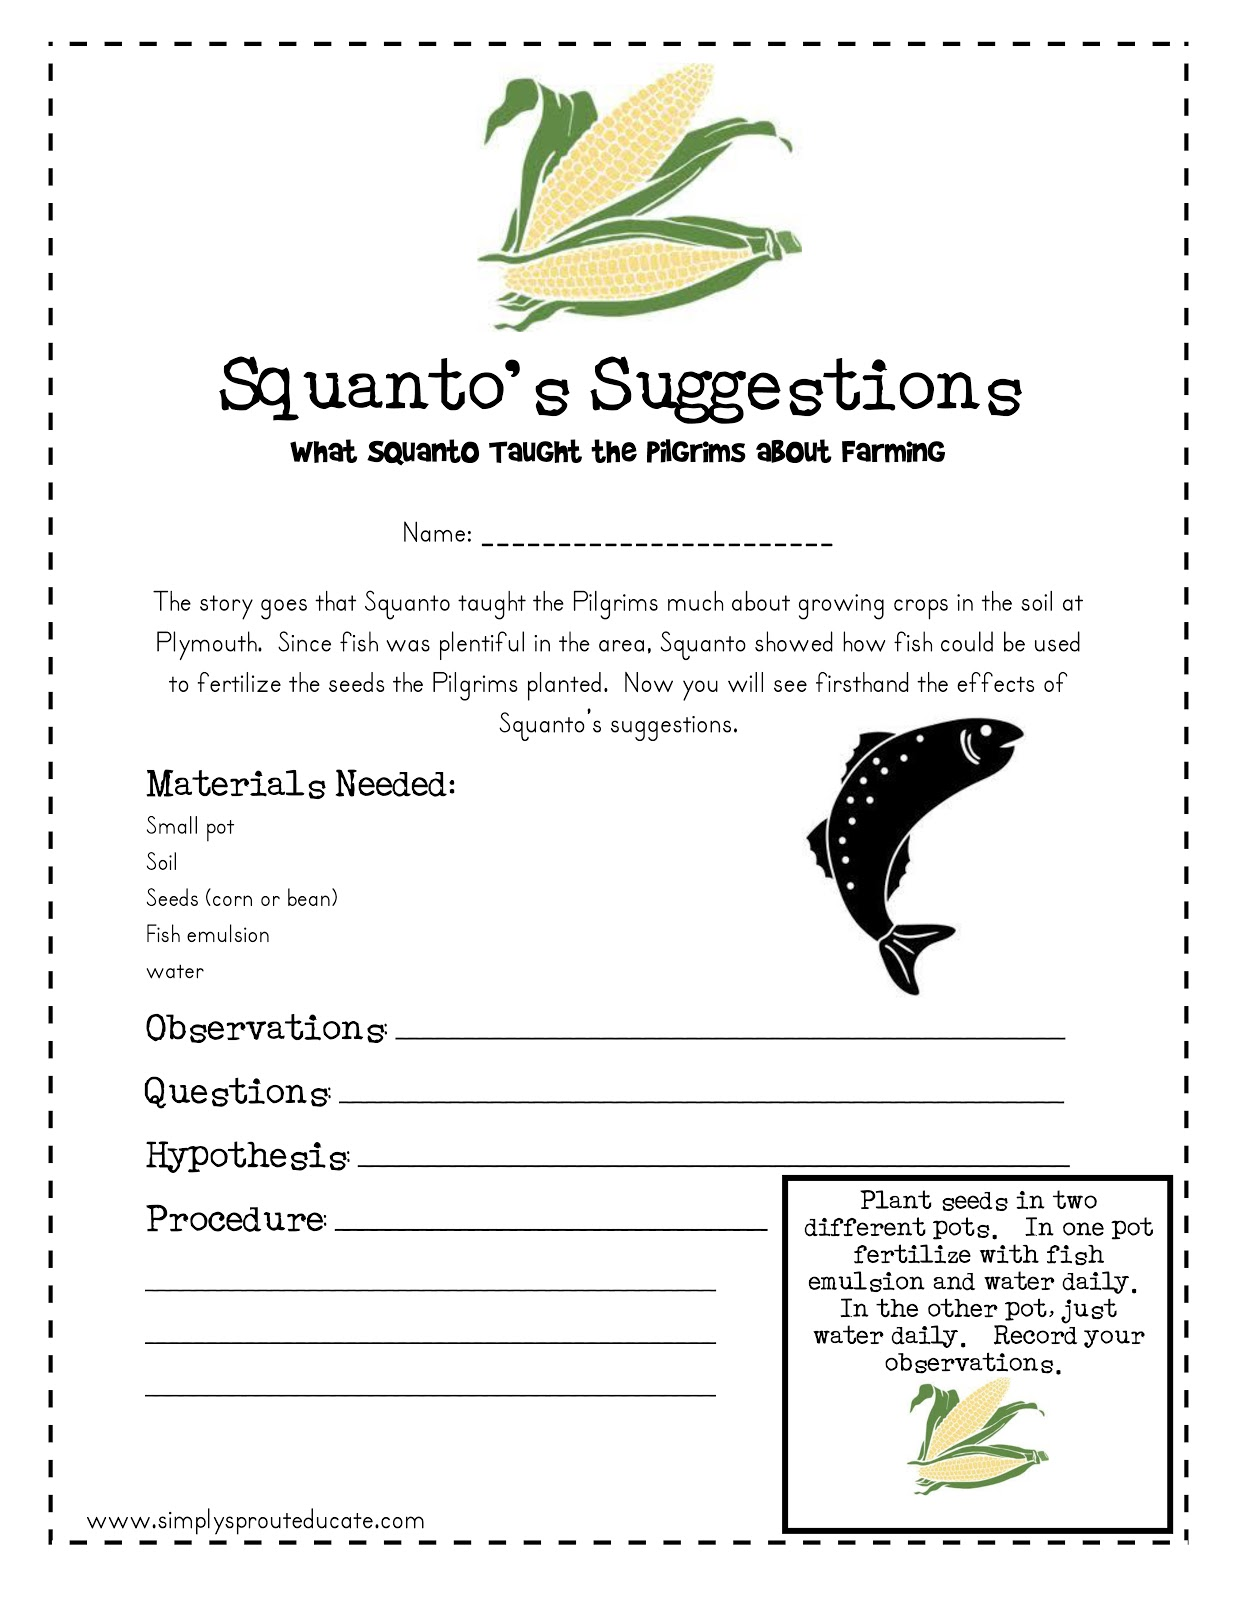 Lil sprouts book club squanto 39 s suggestion s for Fish emulsion home depot